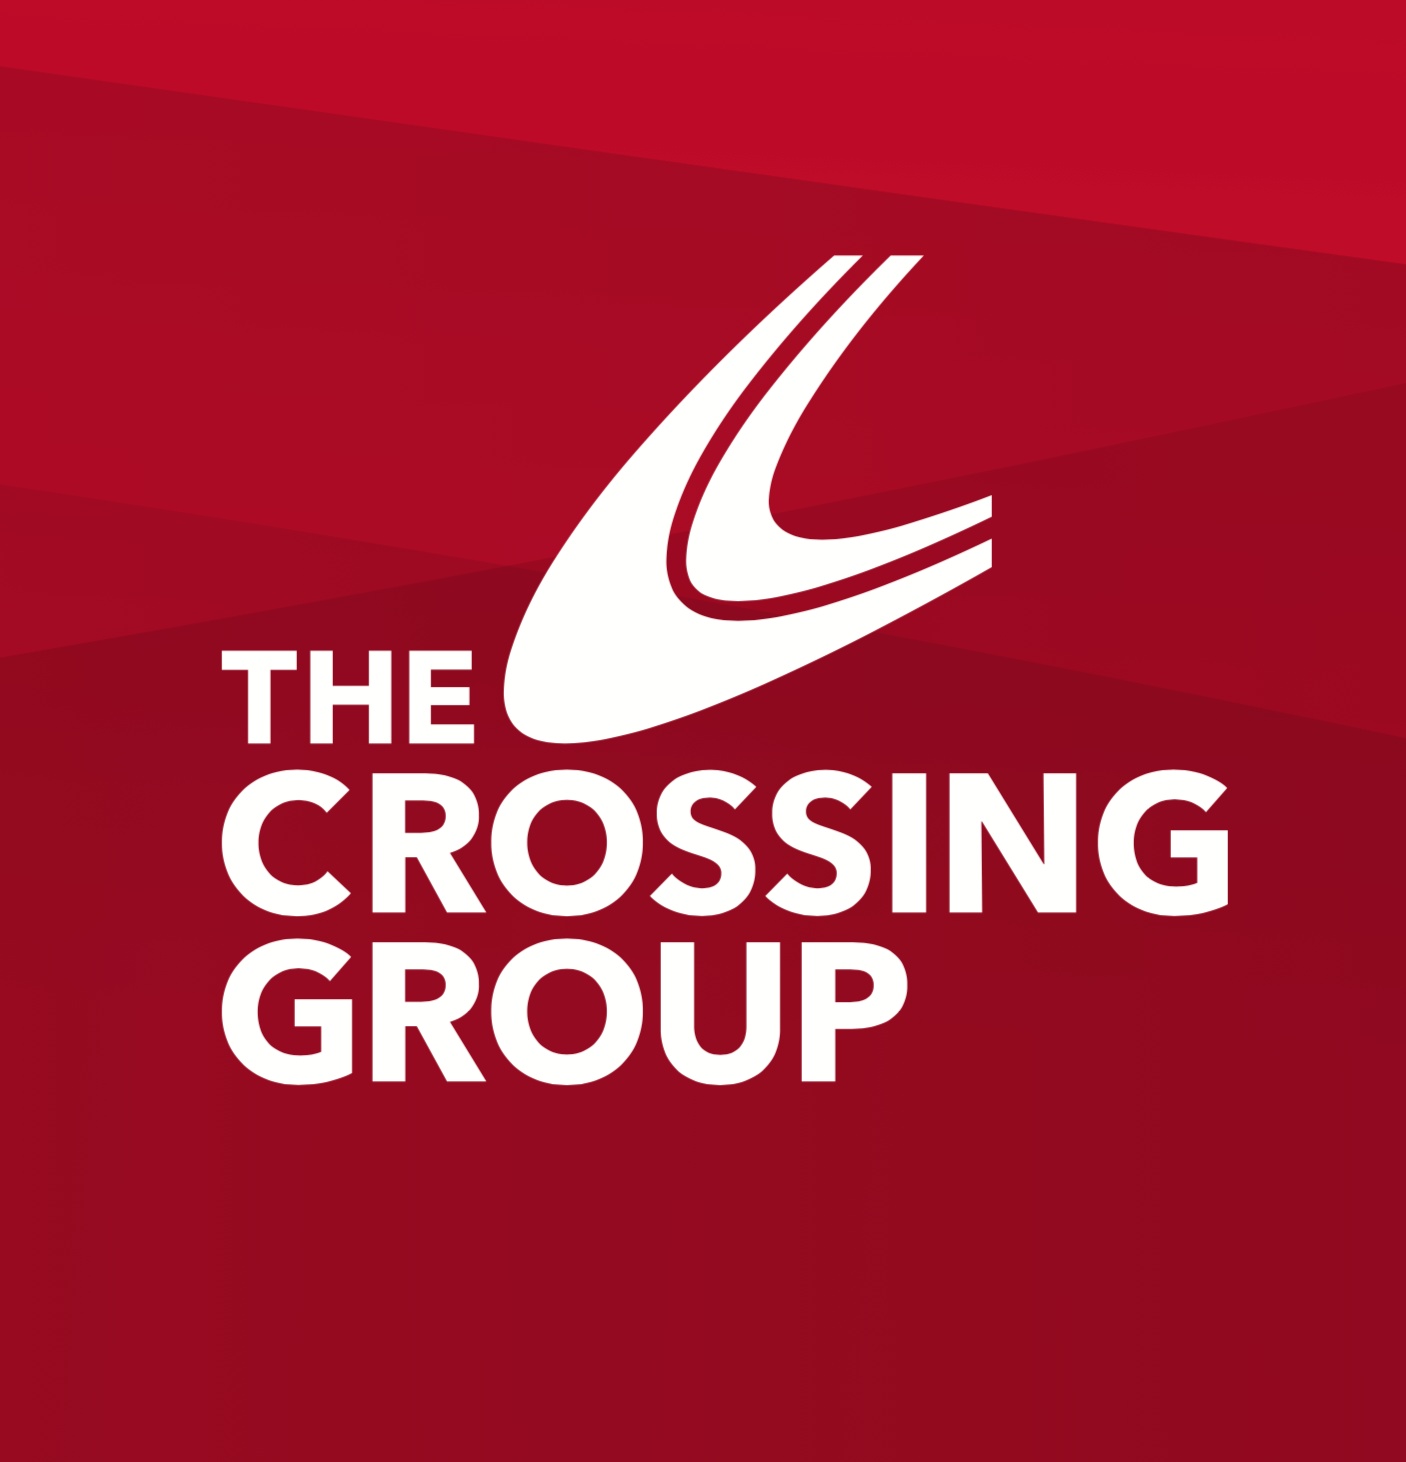 The Crossing Group